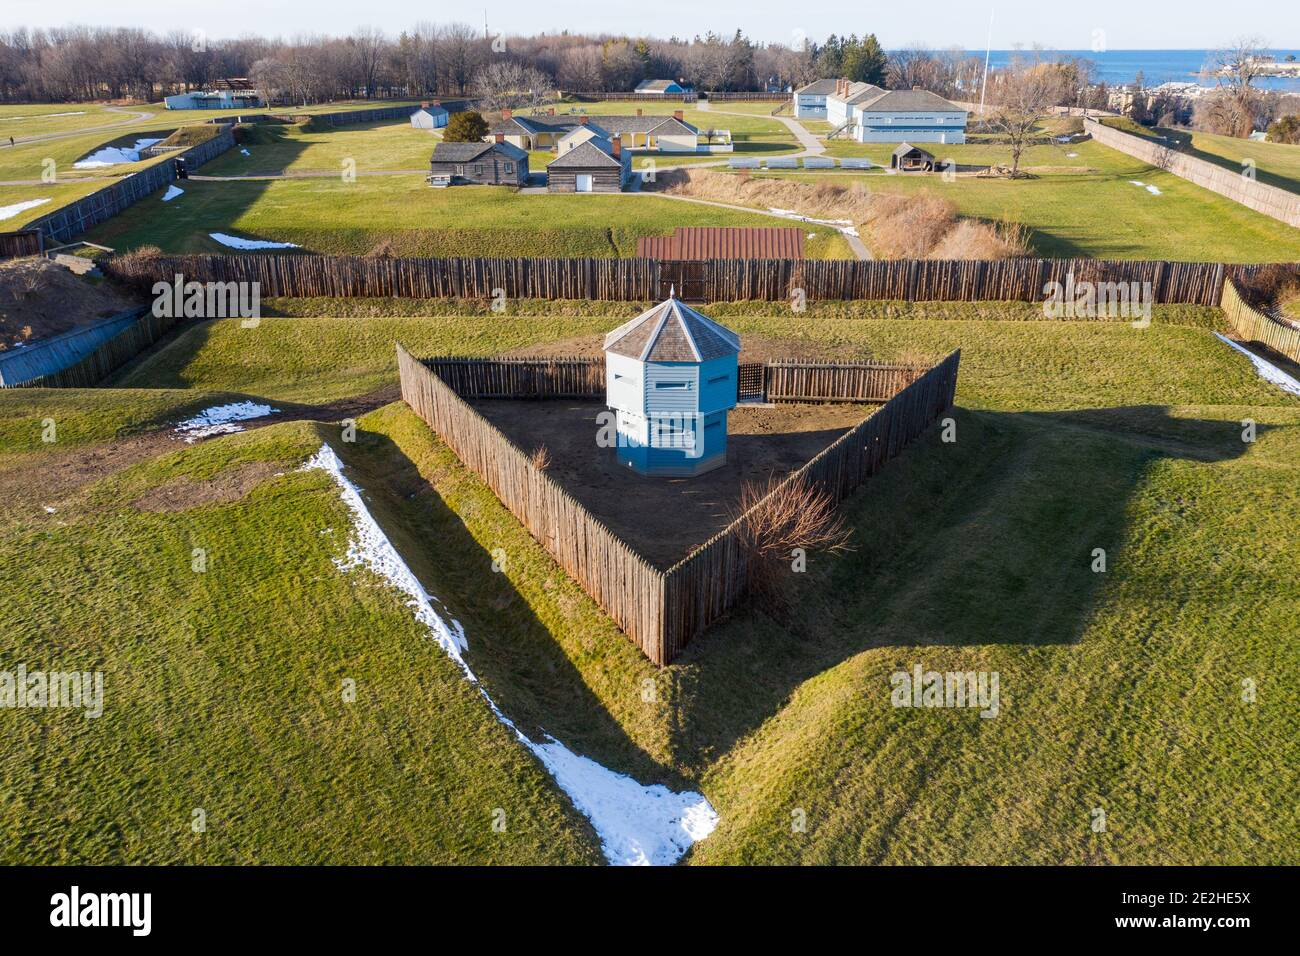 Fort George National Historic Site, Niagara-on-the-Lake, Ontario, Canada Stock Photo